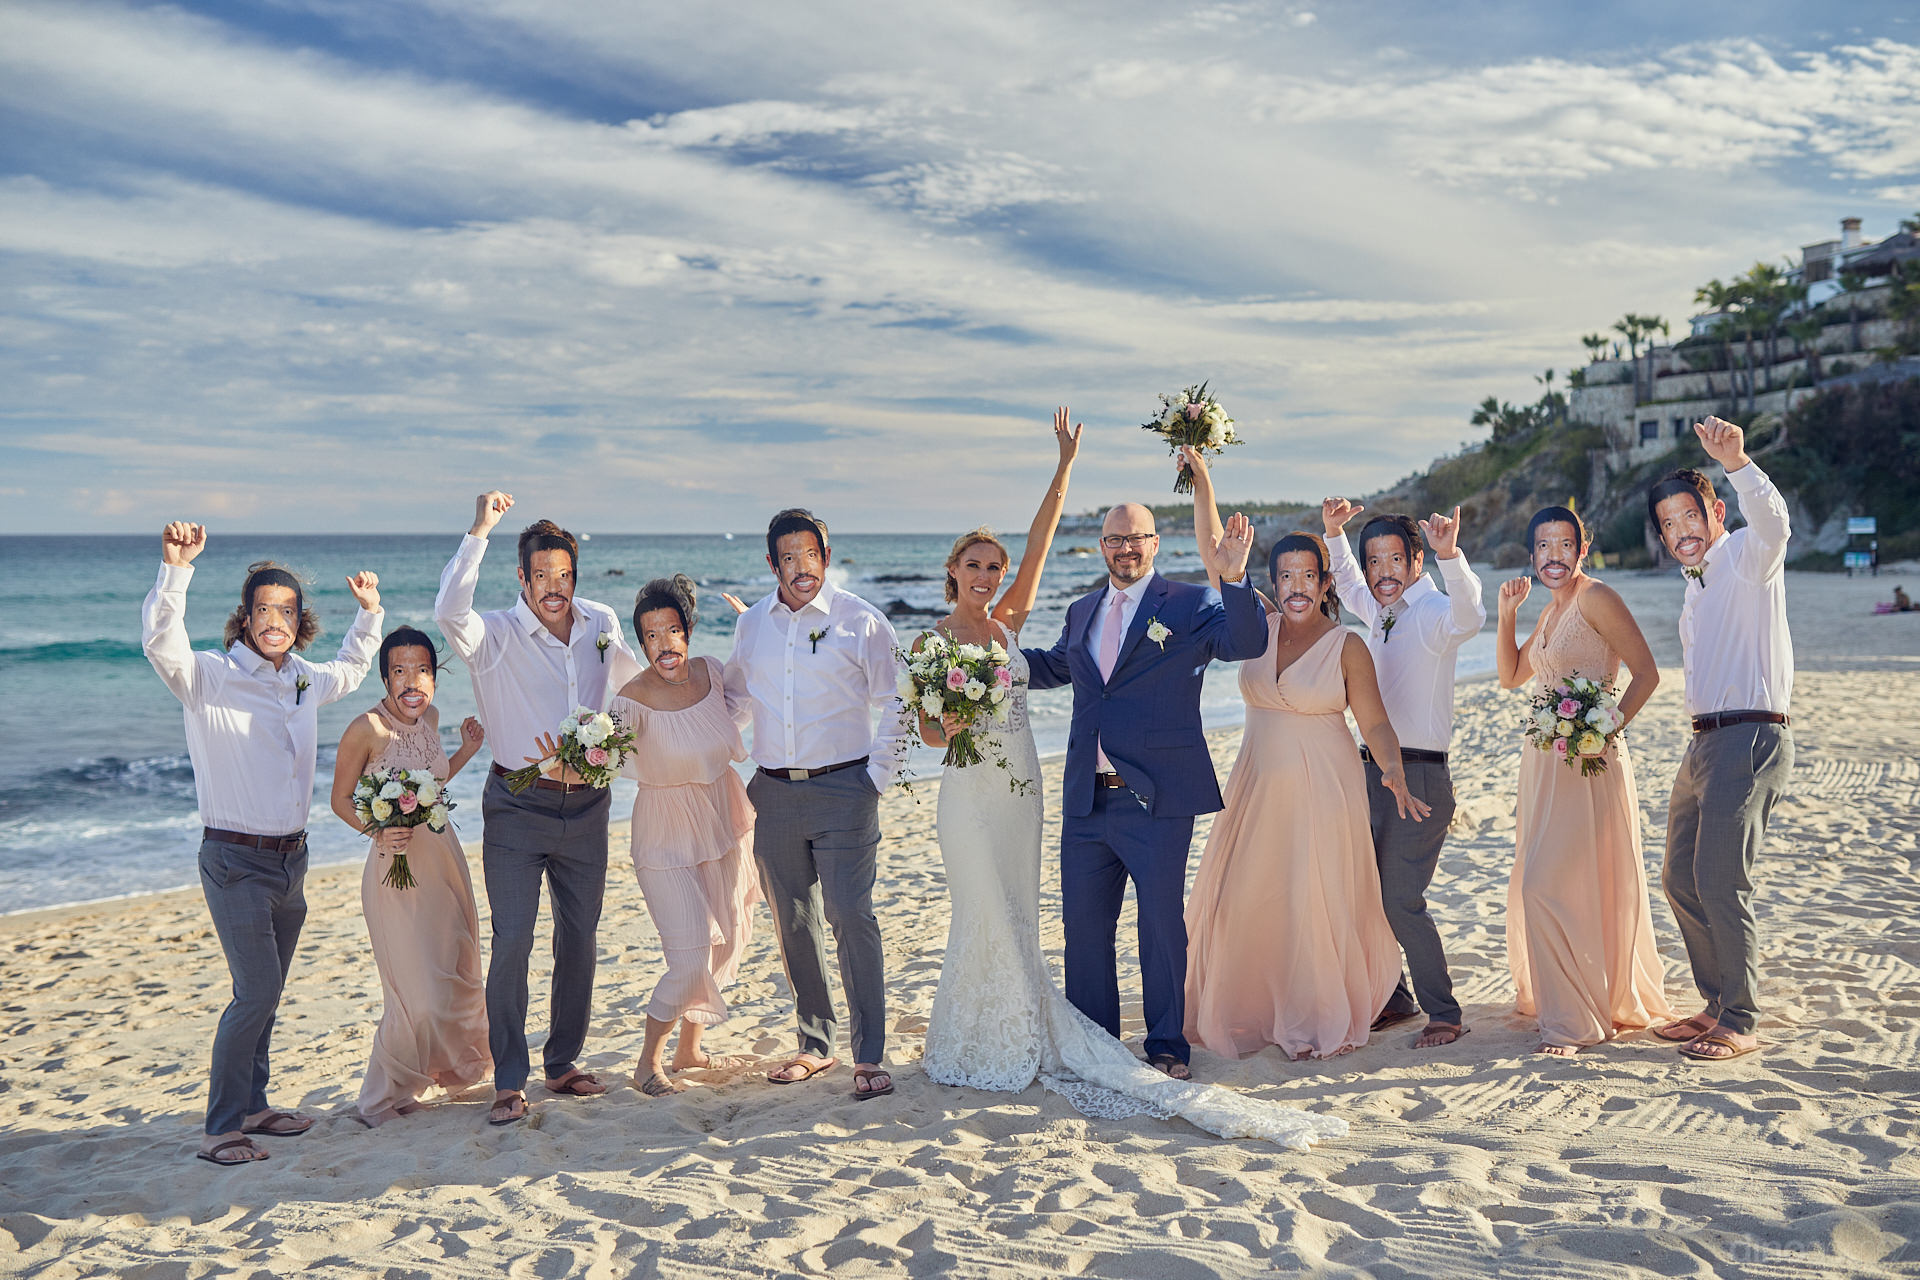 Luxury Weddings In Los Cabos With Lionel Richie Clones On The Beach